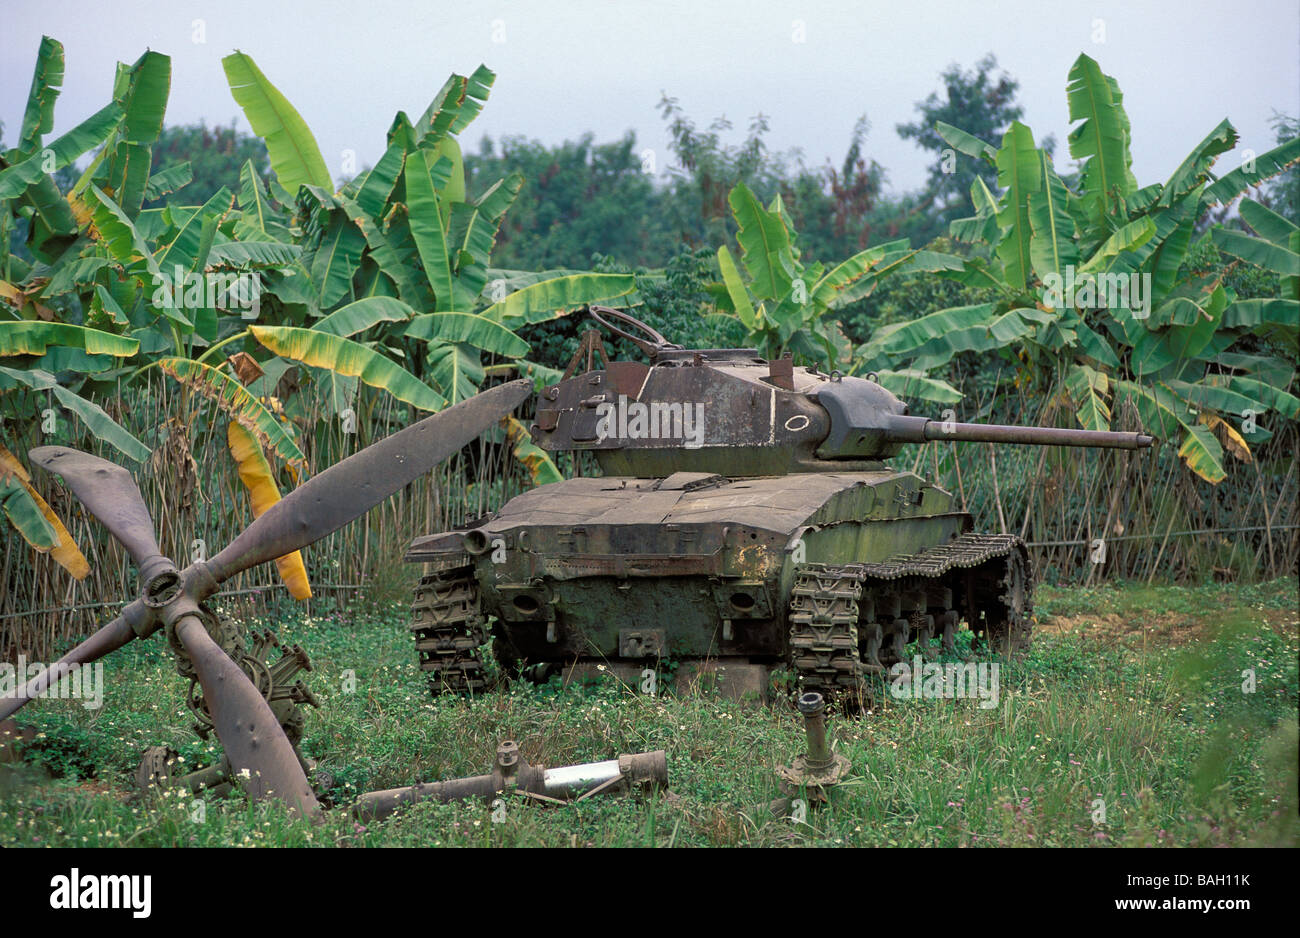 Dien Bien Phu Battle Stock Photos & Dien Bien Phu Battle Stock ...